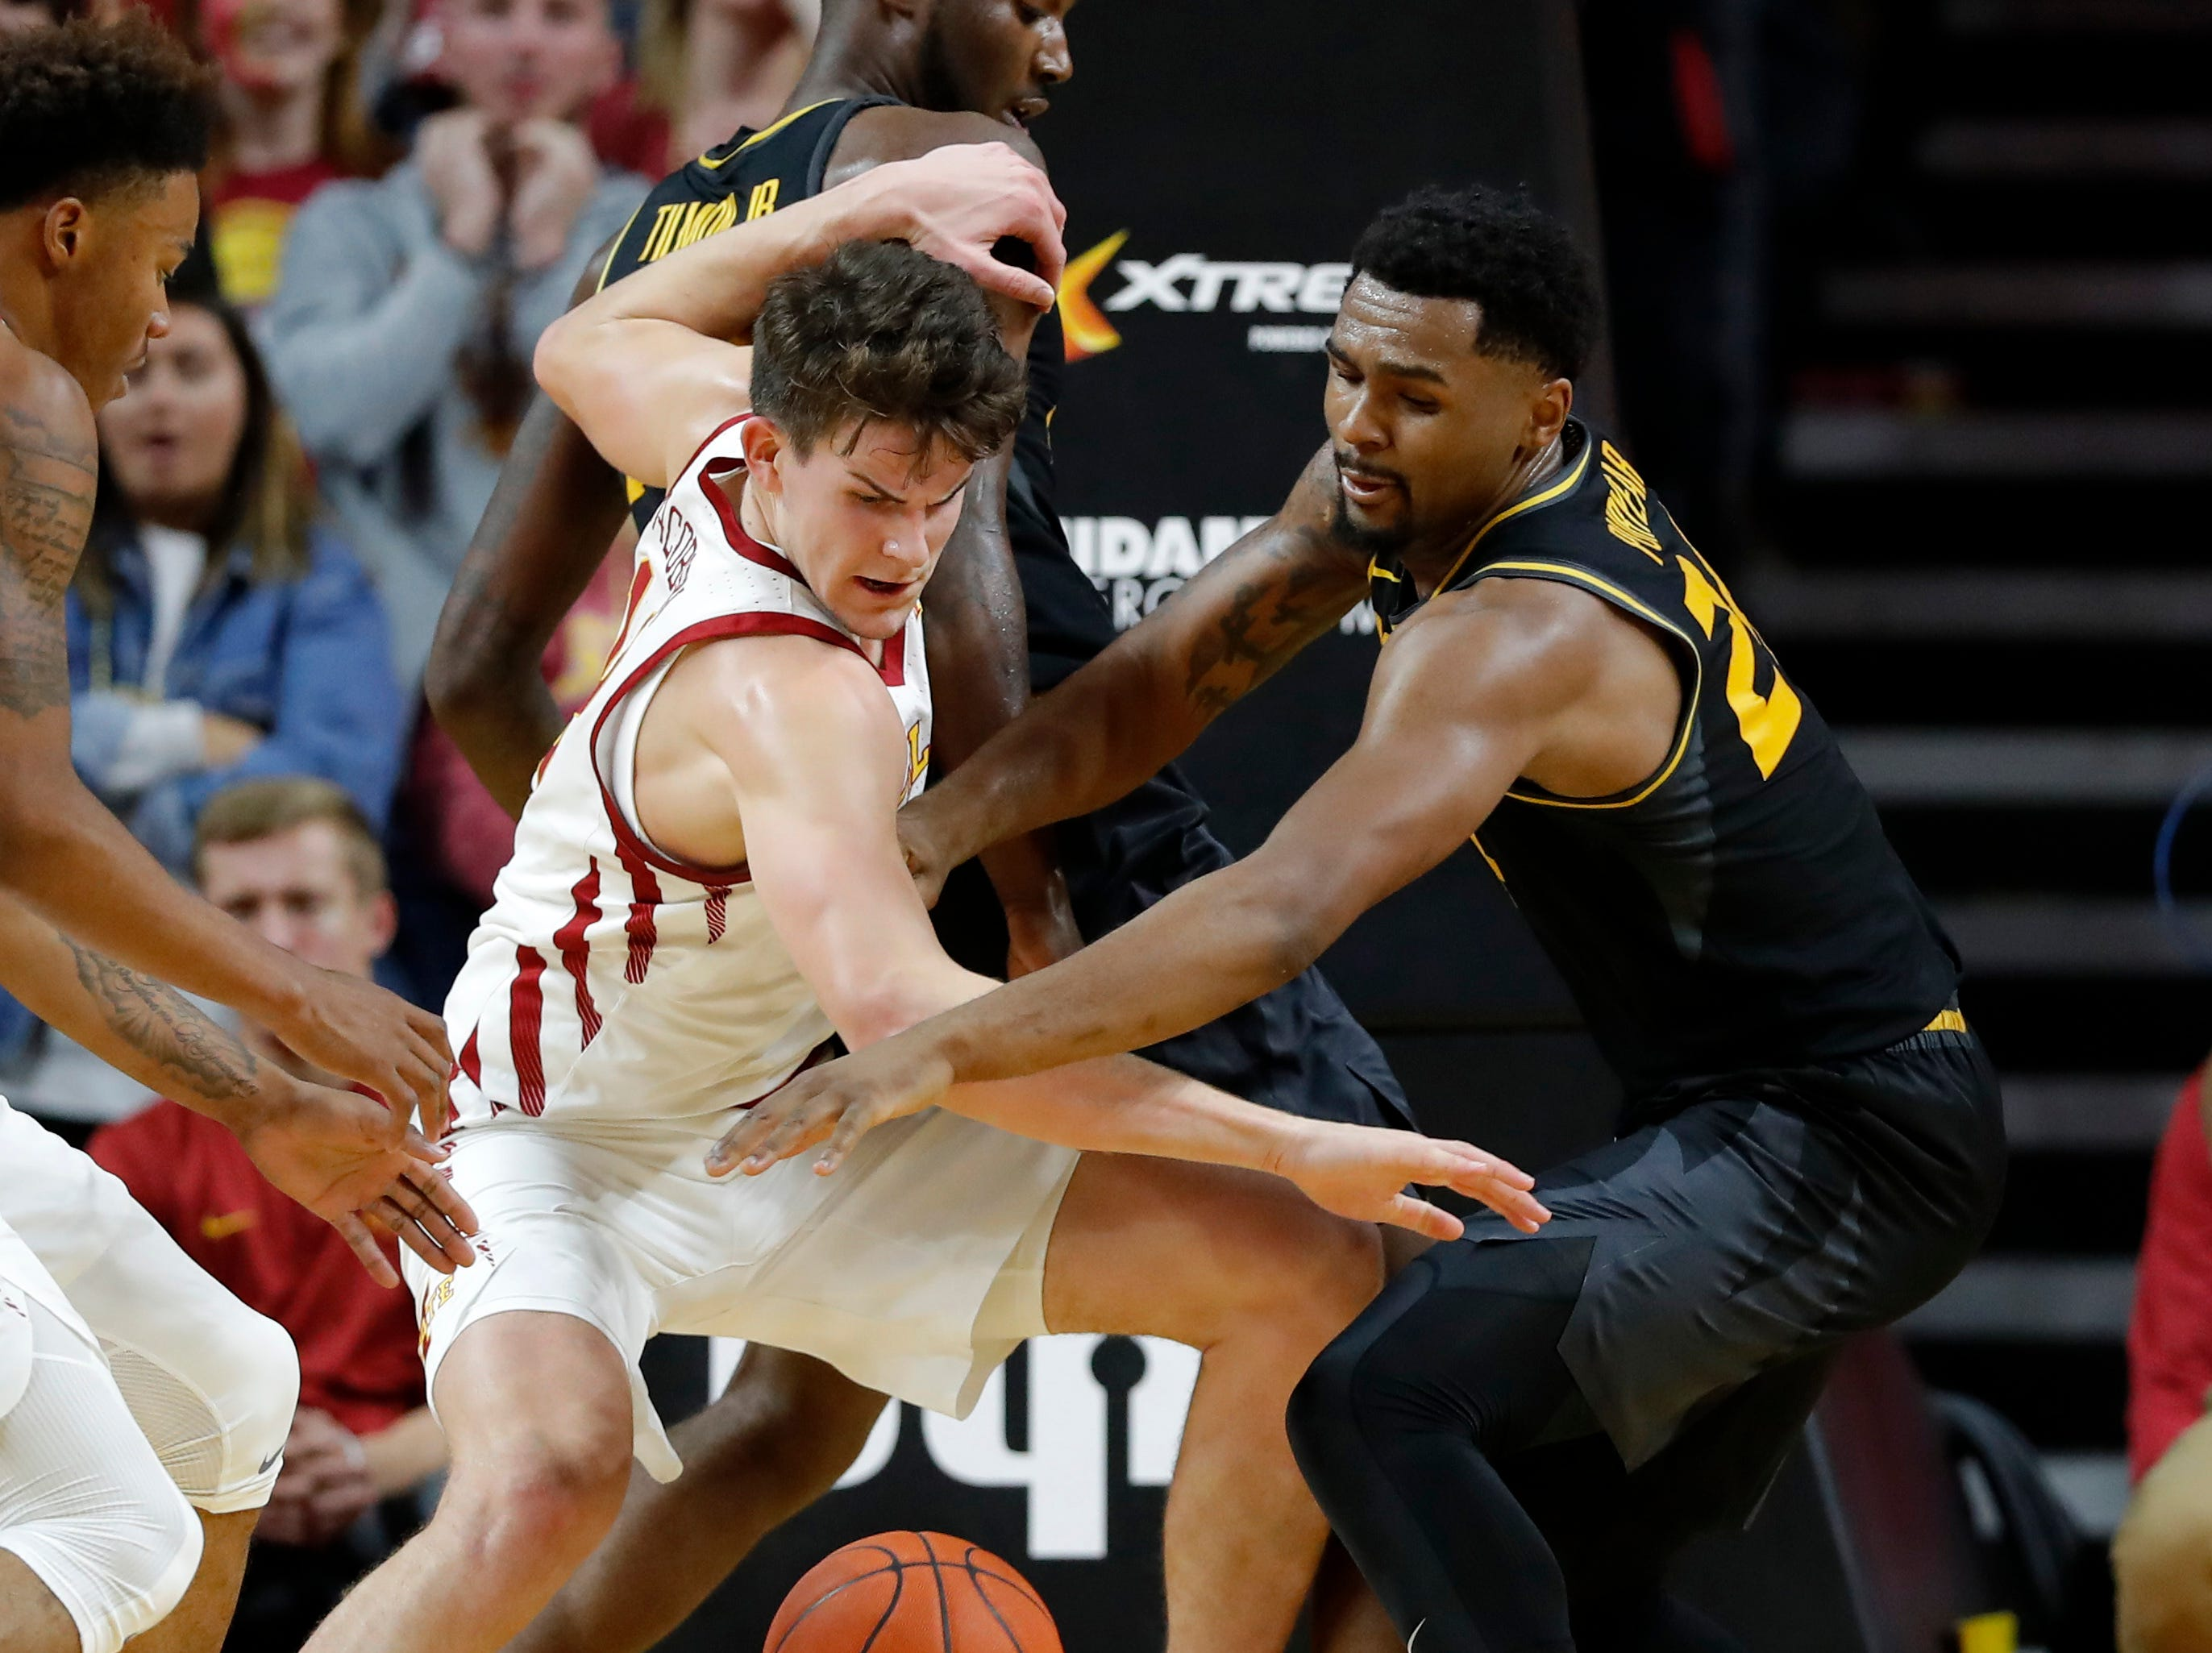 Iowa State forward Michael Jacobson, left, fights for a loose ball with Missouri forward Kevin Puryear during the first half of an NCAA college basketball game, Friday, Nov. 9, 2018, in Ames, Iowa.